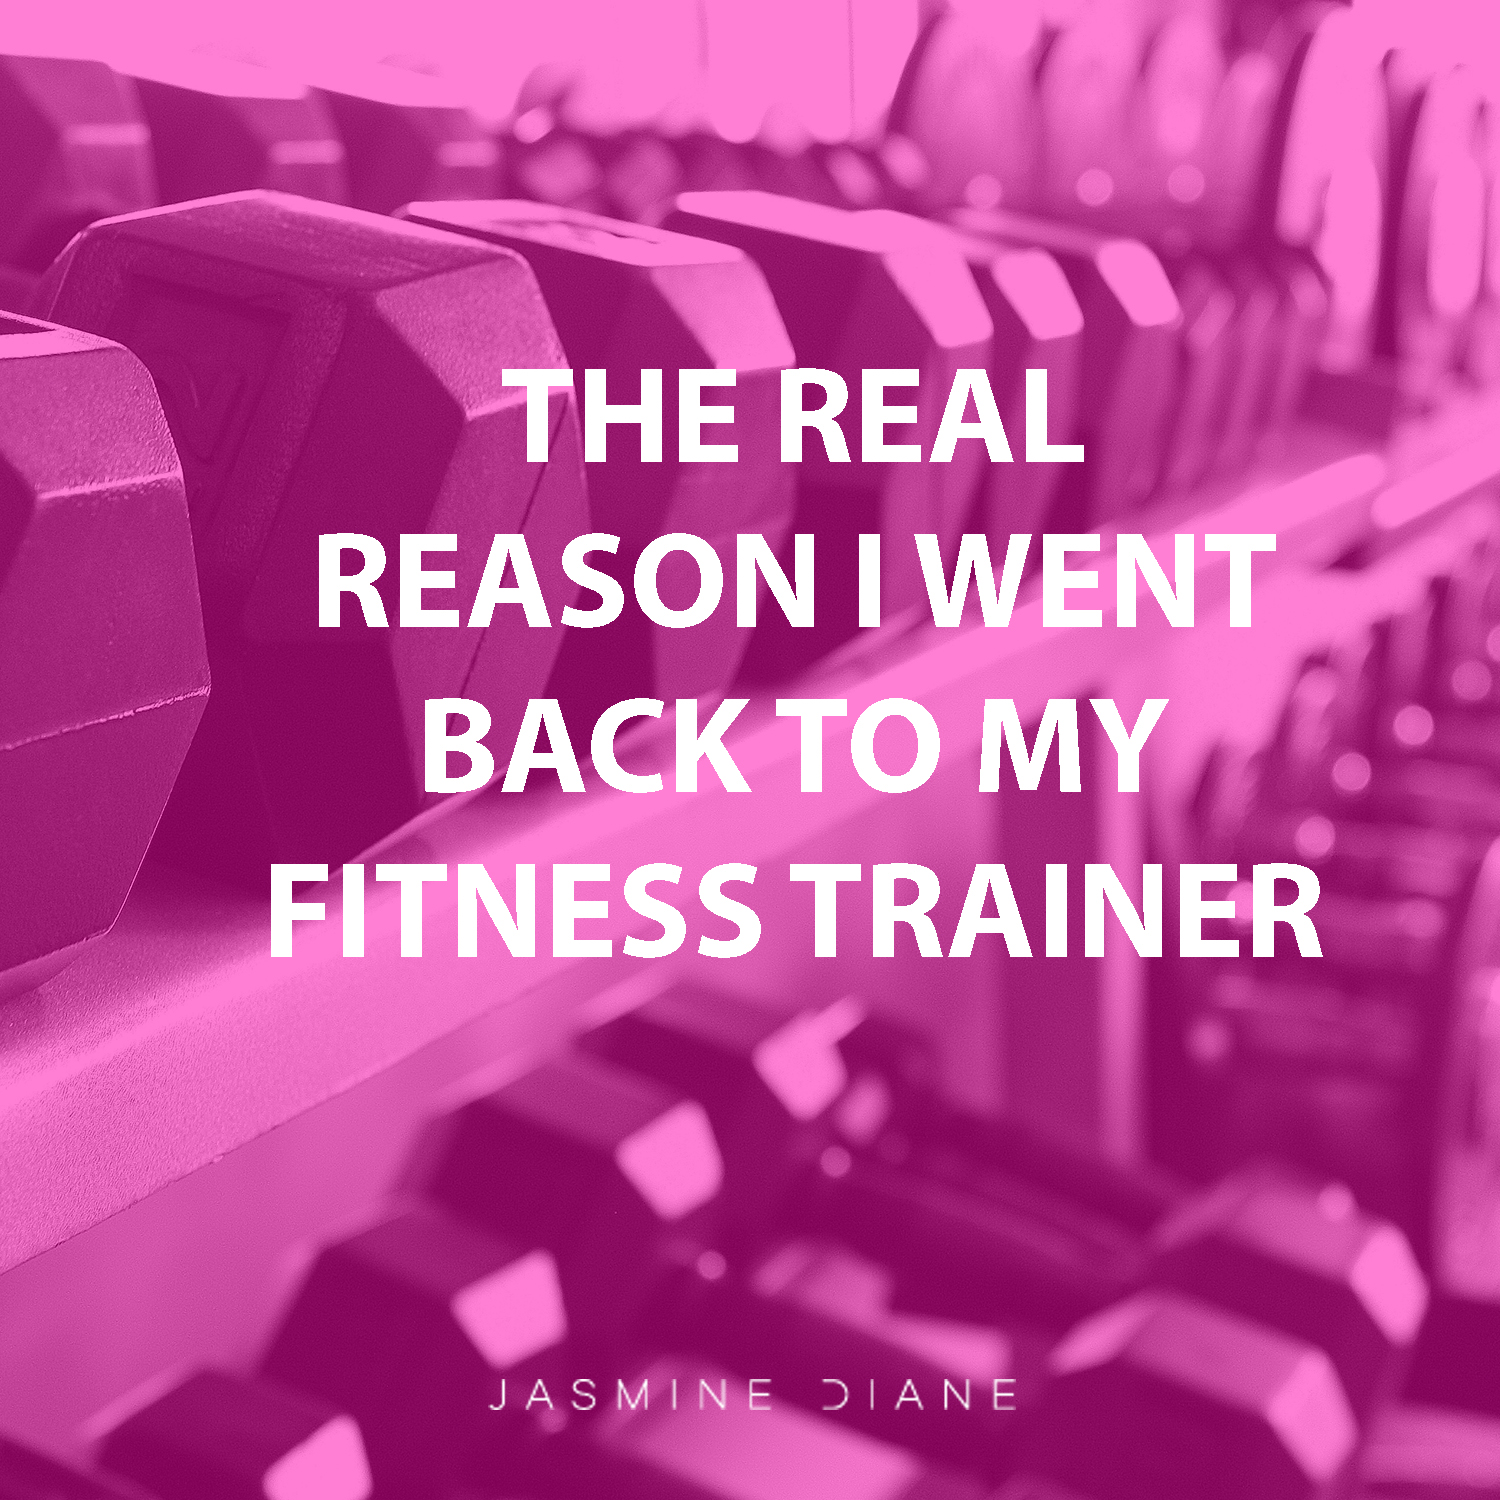 The real reason I went back to my fitness trainer by jasminediane.com